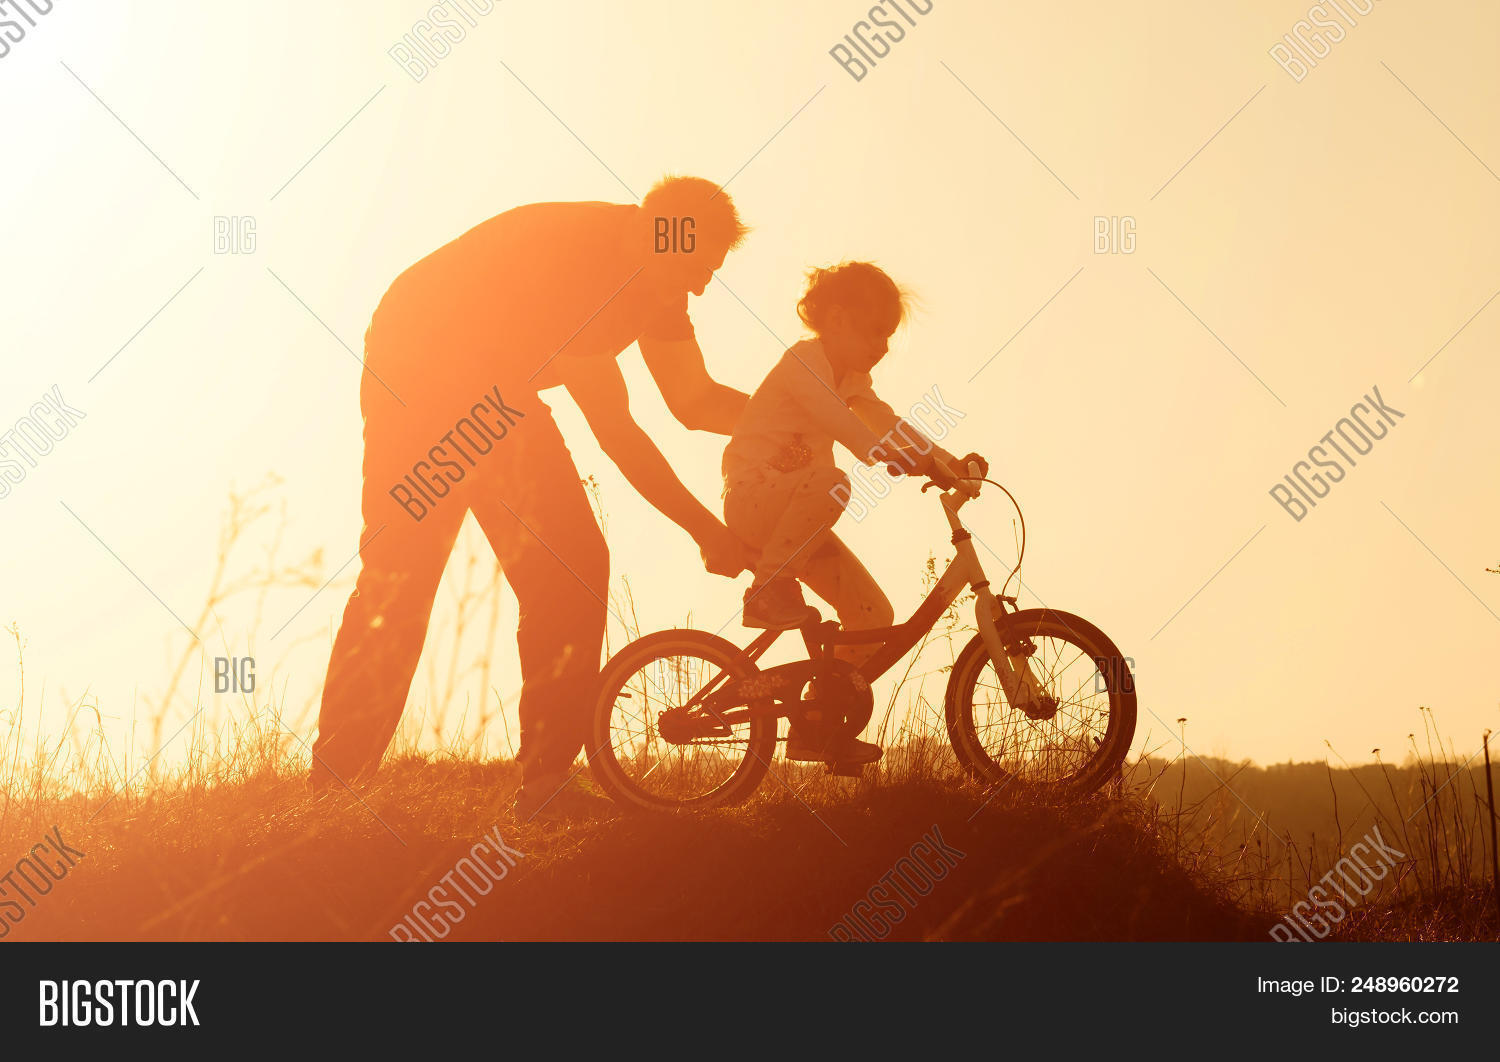 adult,bicycle,bike,care,child,childcare,childhood,dad,daddy,daughter,emotion,enjoyment,evening,family,father,field,fun,girl,happiness,happy,help,joy,kid,learning,leisure,life,lifestyle,little,loving,man,meadow,nature,orange,outdoors,parent,parenthood,scene,security,shadow,silhouette,sky,sun,sunlight,sunset,support,teaching,toddler,together,togetherness,vacation